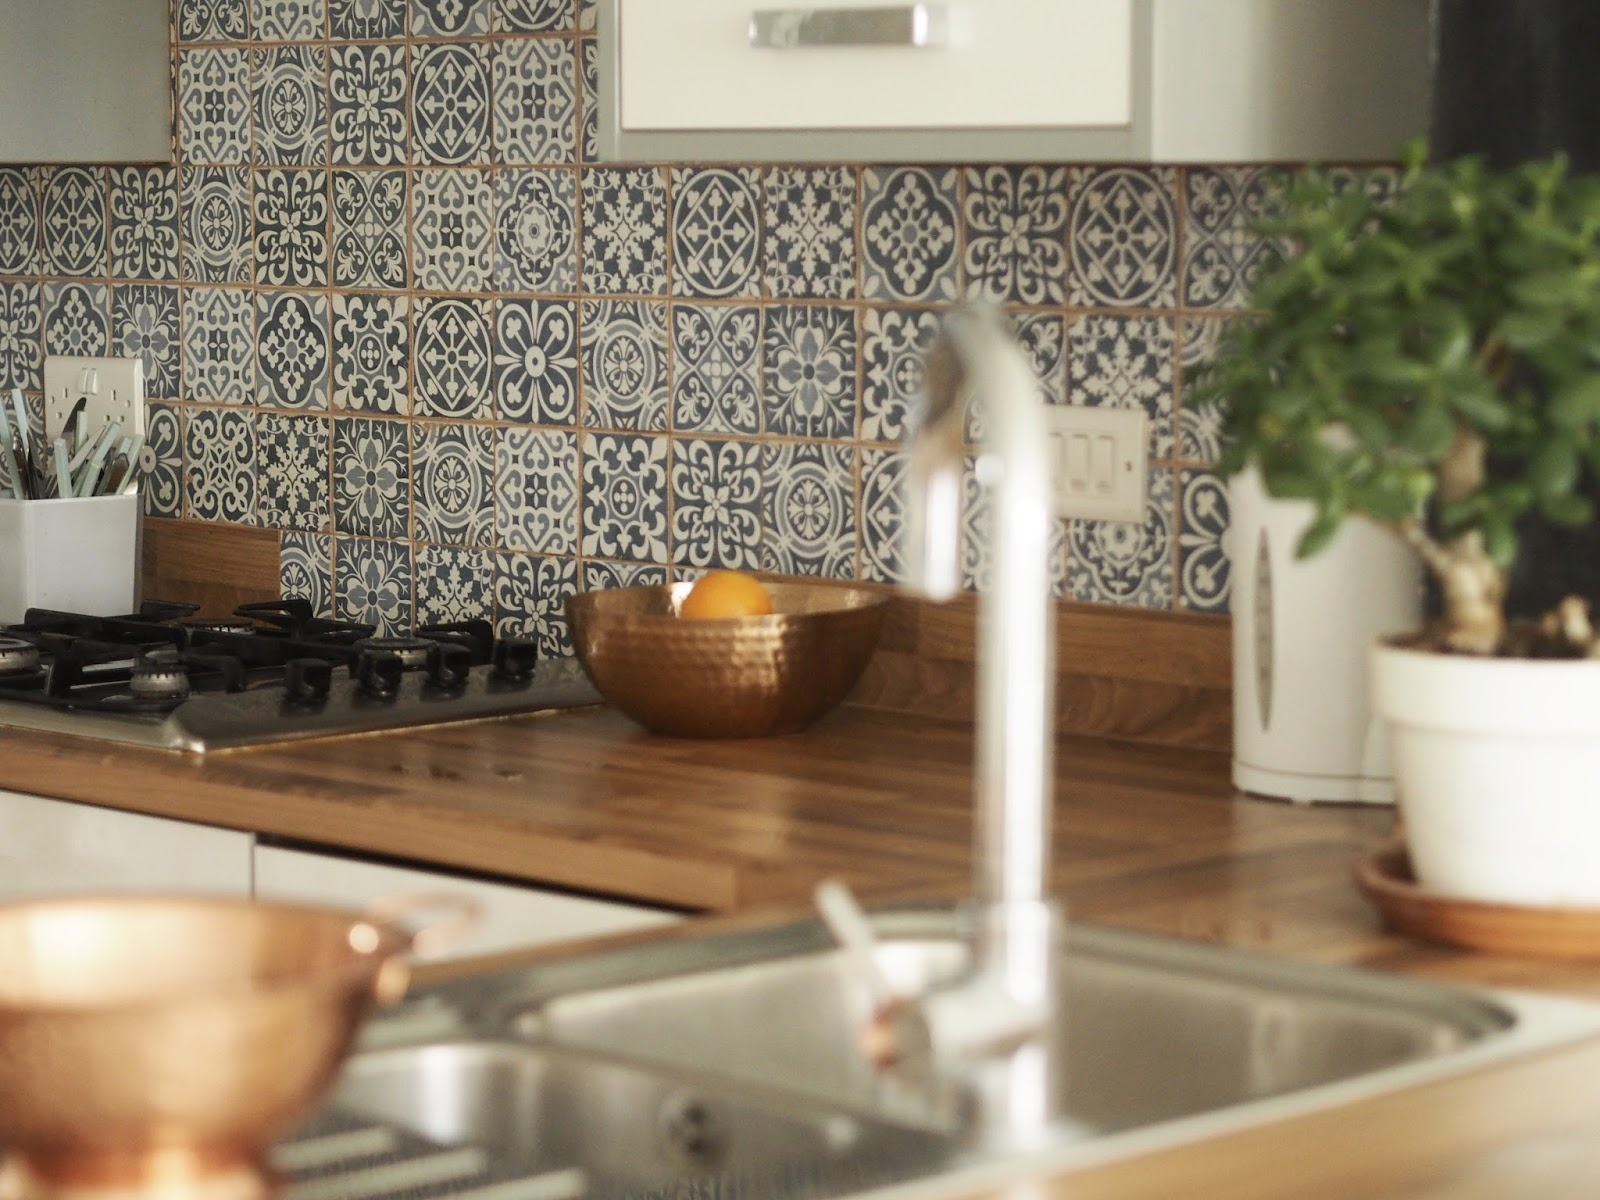 OUR NEW MOROCCAN KITCHEN TILES: BEFORE & AFTER